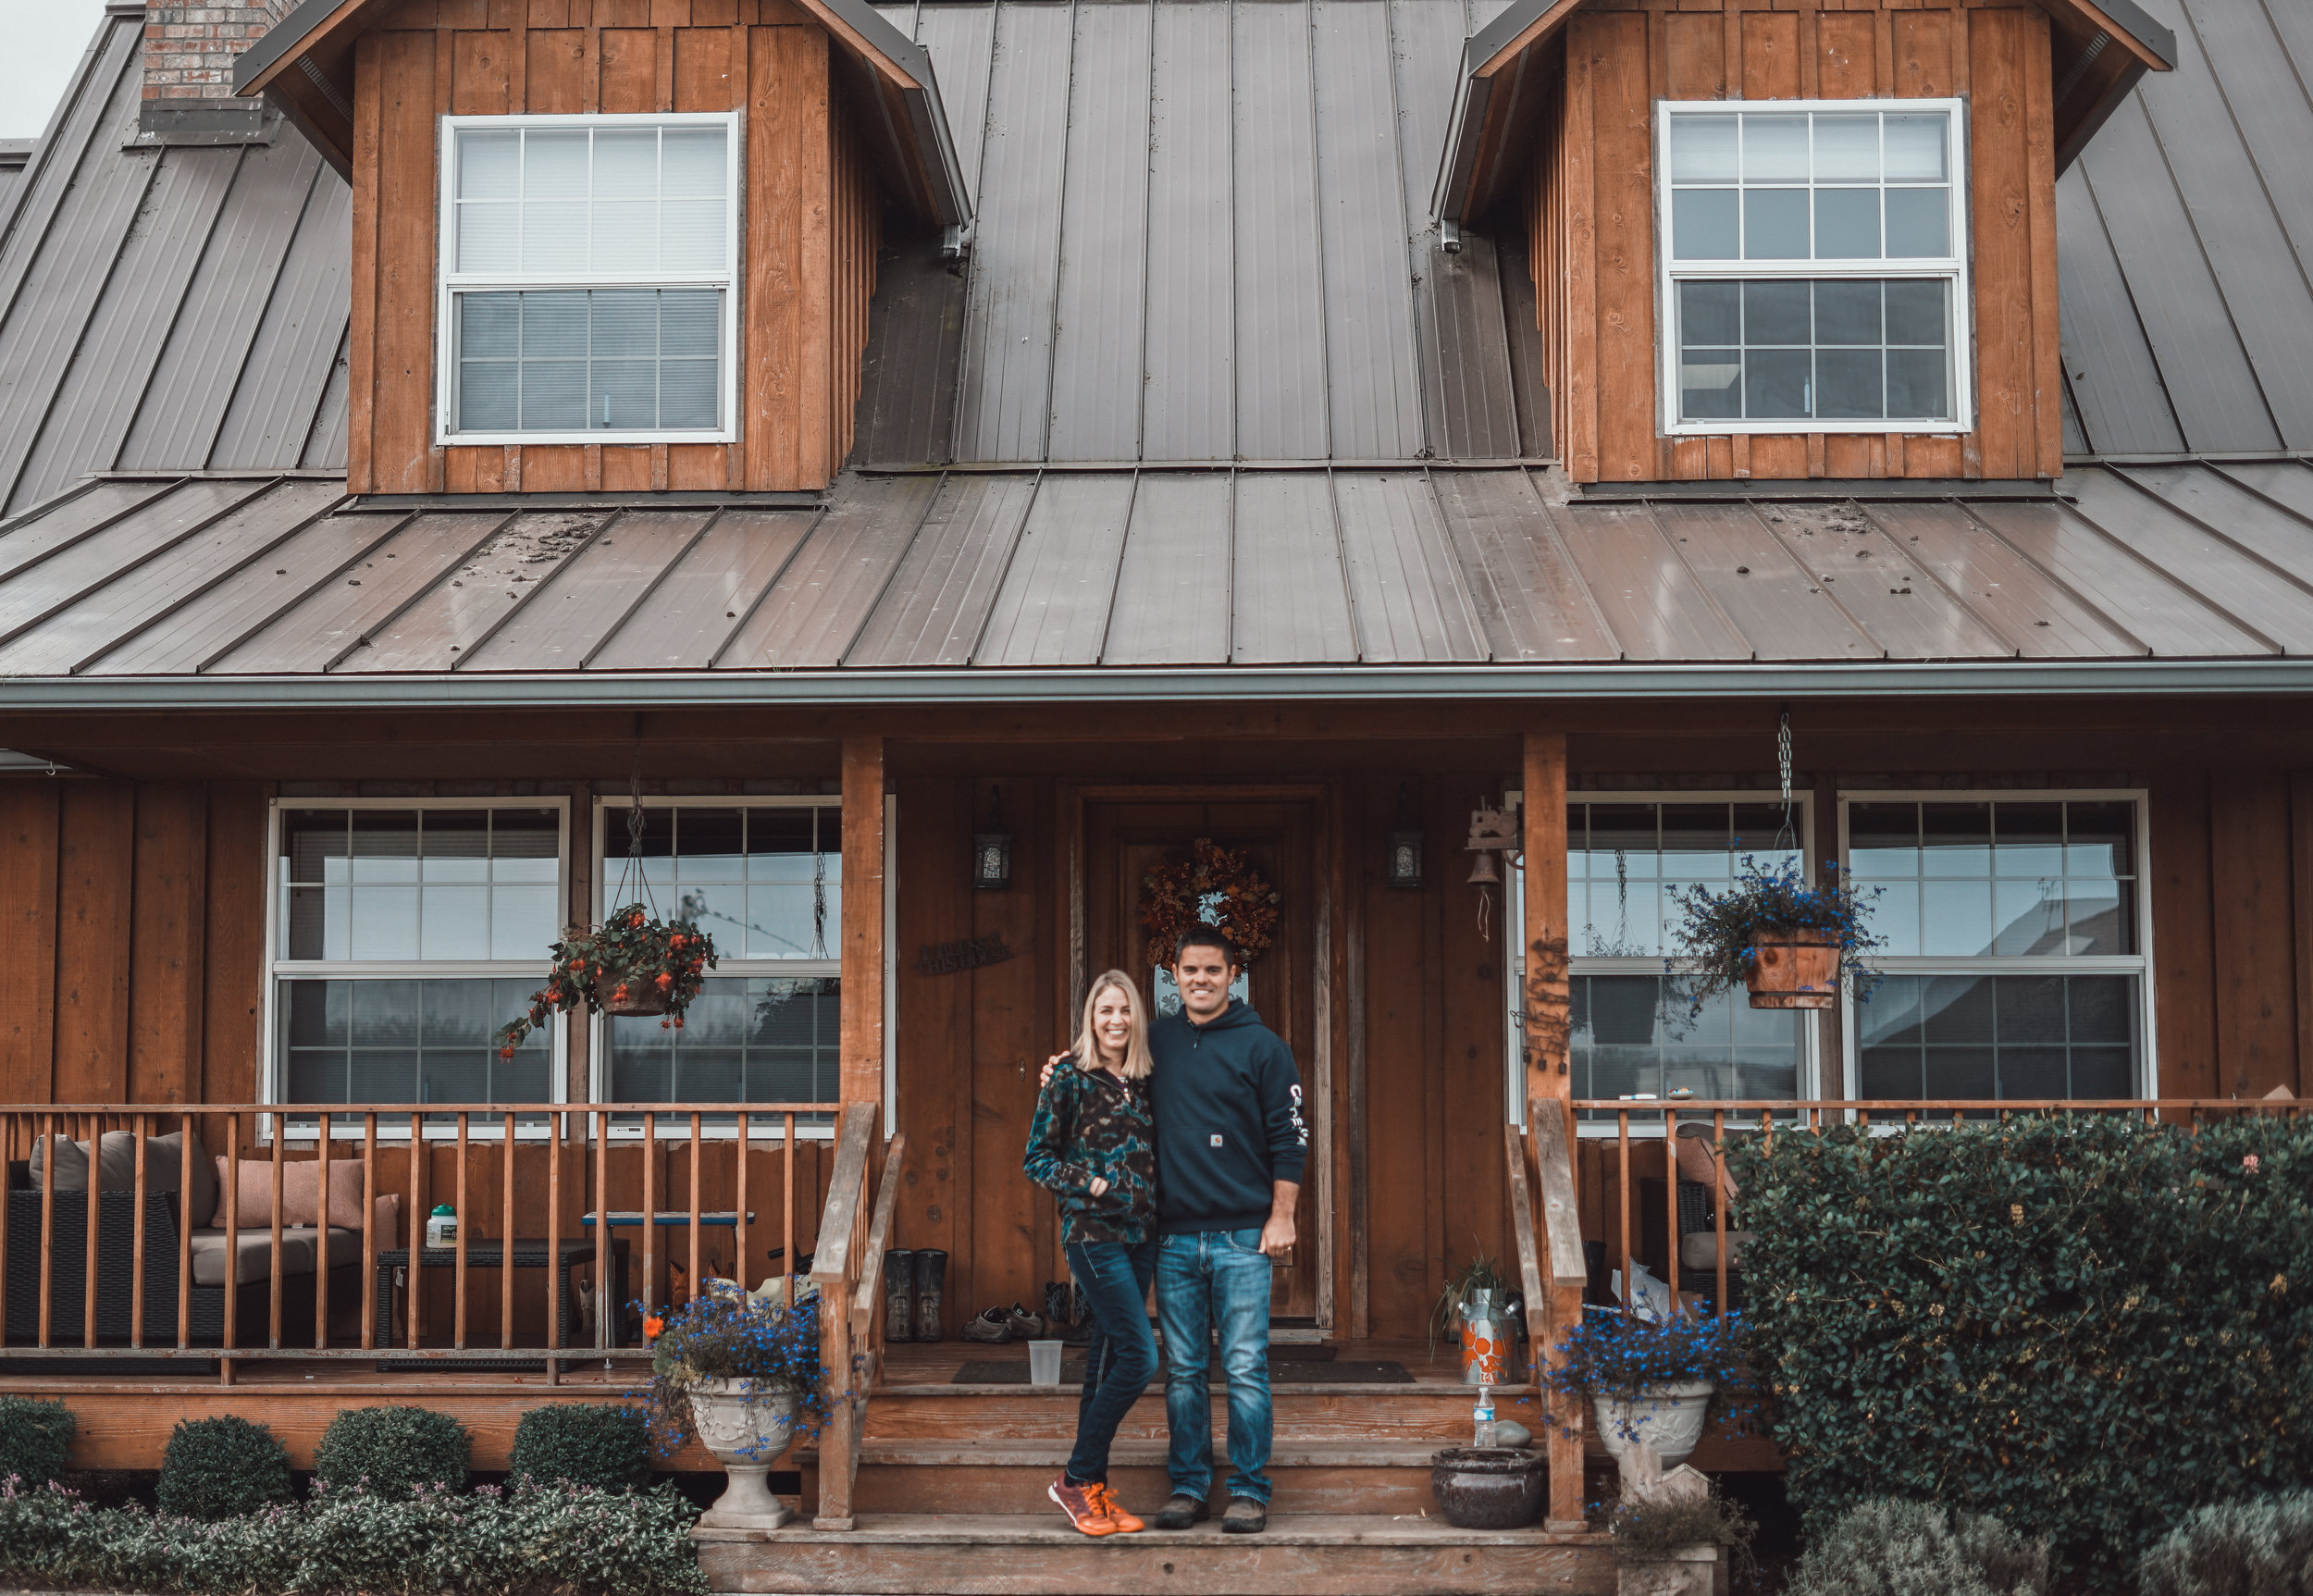 Ryan and Sarah McCarthey in front of their farmstead home. Photo by Courtney Baxter / TNC